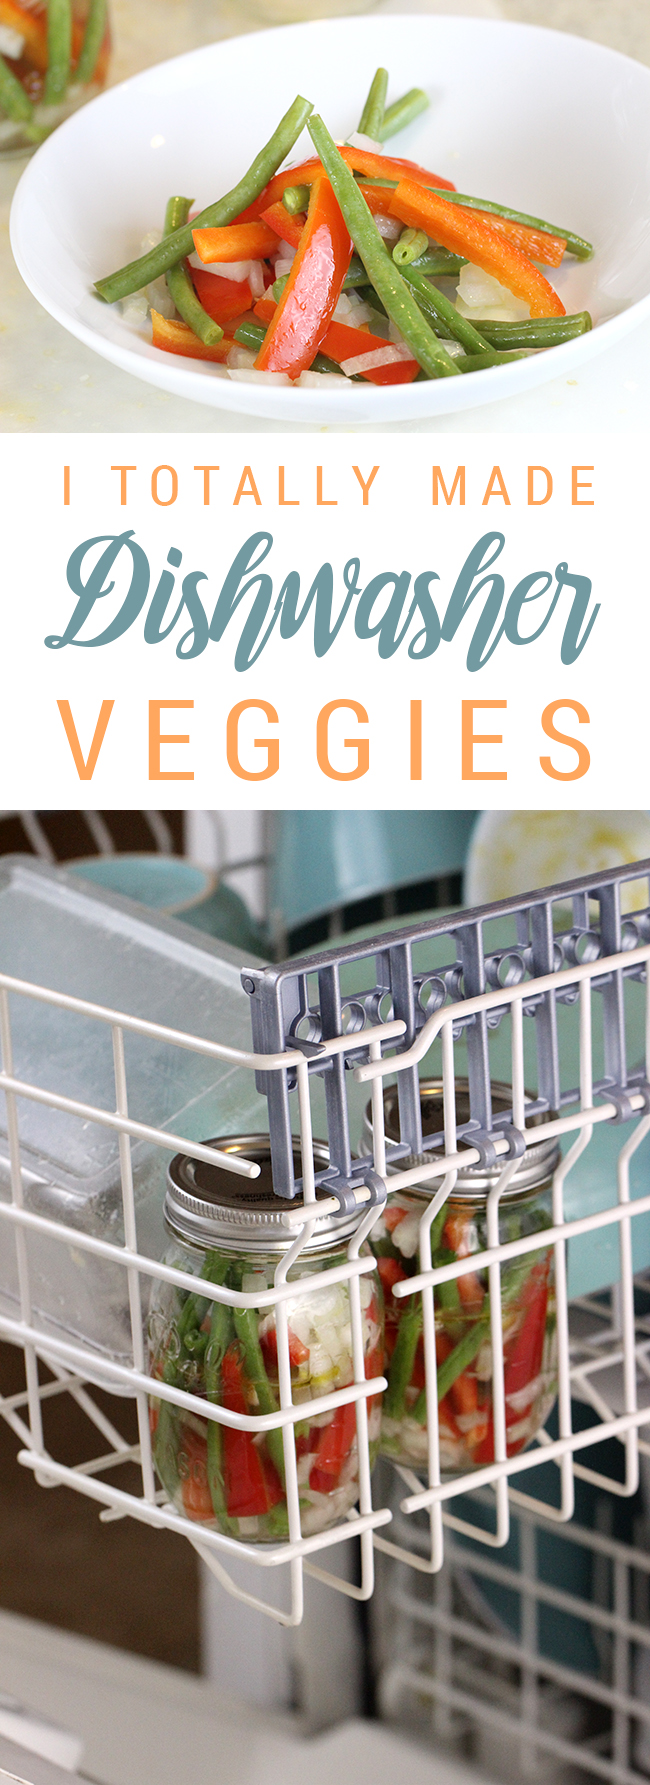 Dishwasher cooking? Kinda crazy, kinda awesome. Practical? Hmm. I'll try anything once.